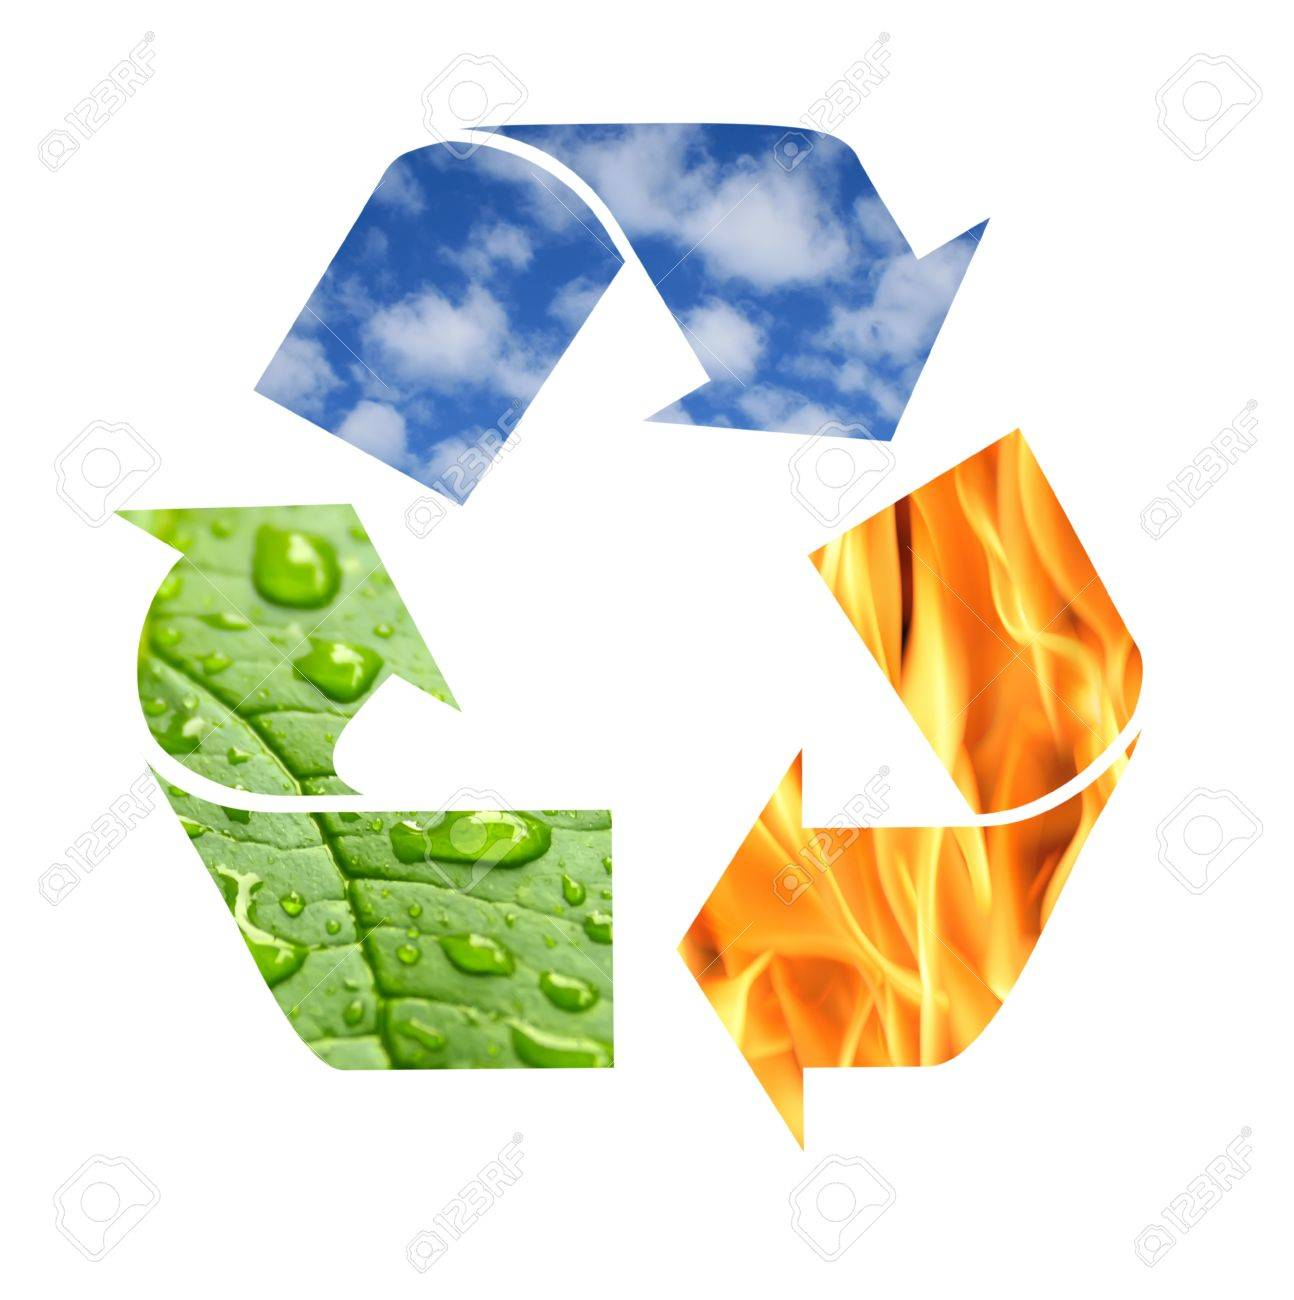 Recycle symbol made from fire clouds and green leaf with drops recycle symbol made from fire clouds and green leaf with drops of water stock photo biocorpaavc Choice Image